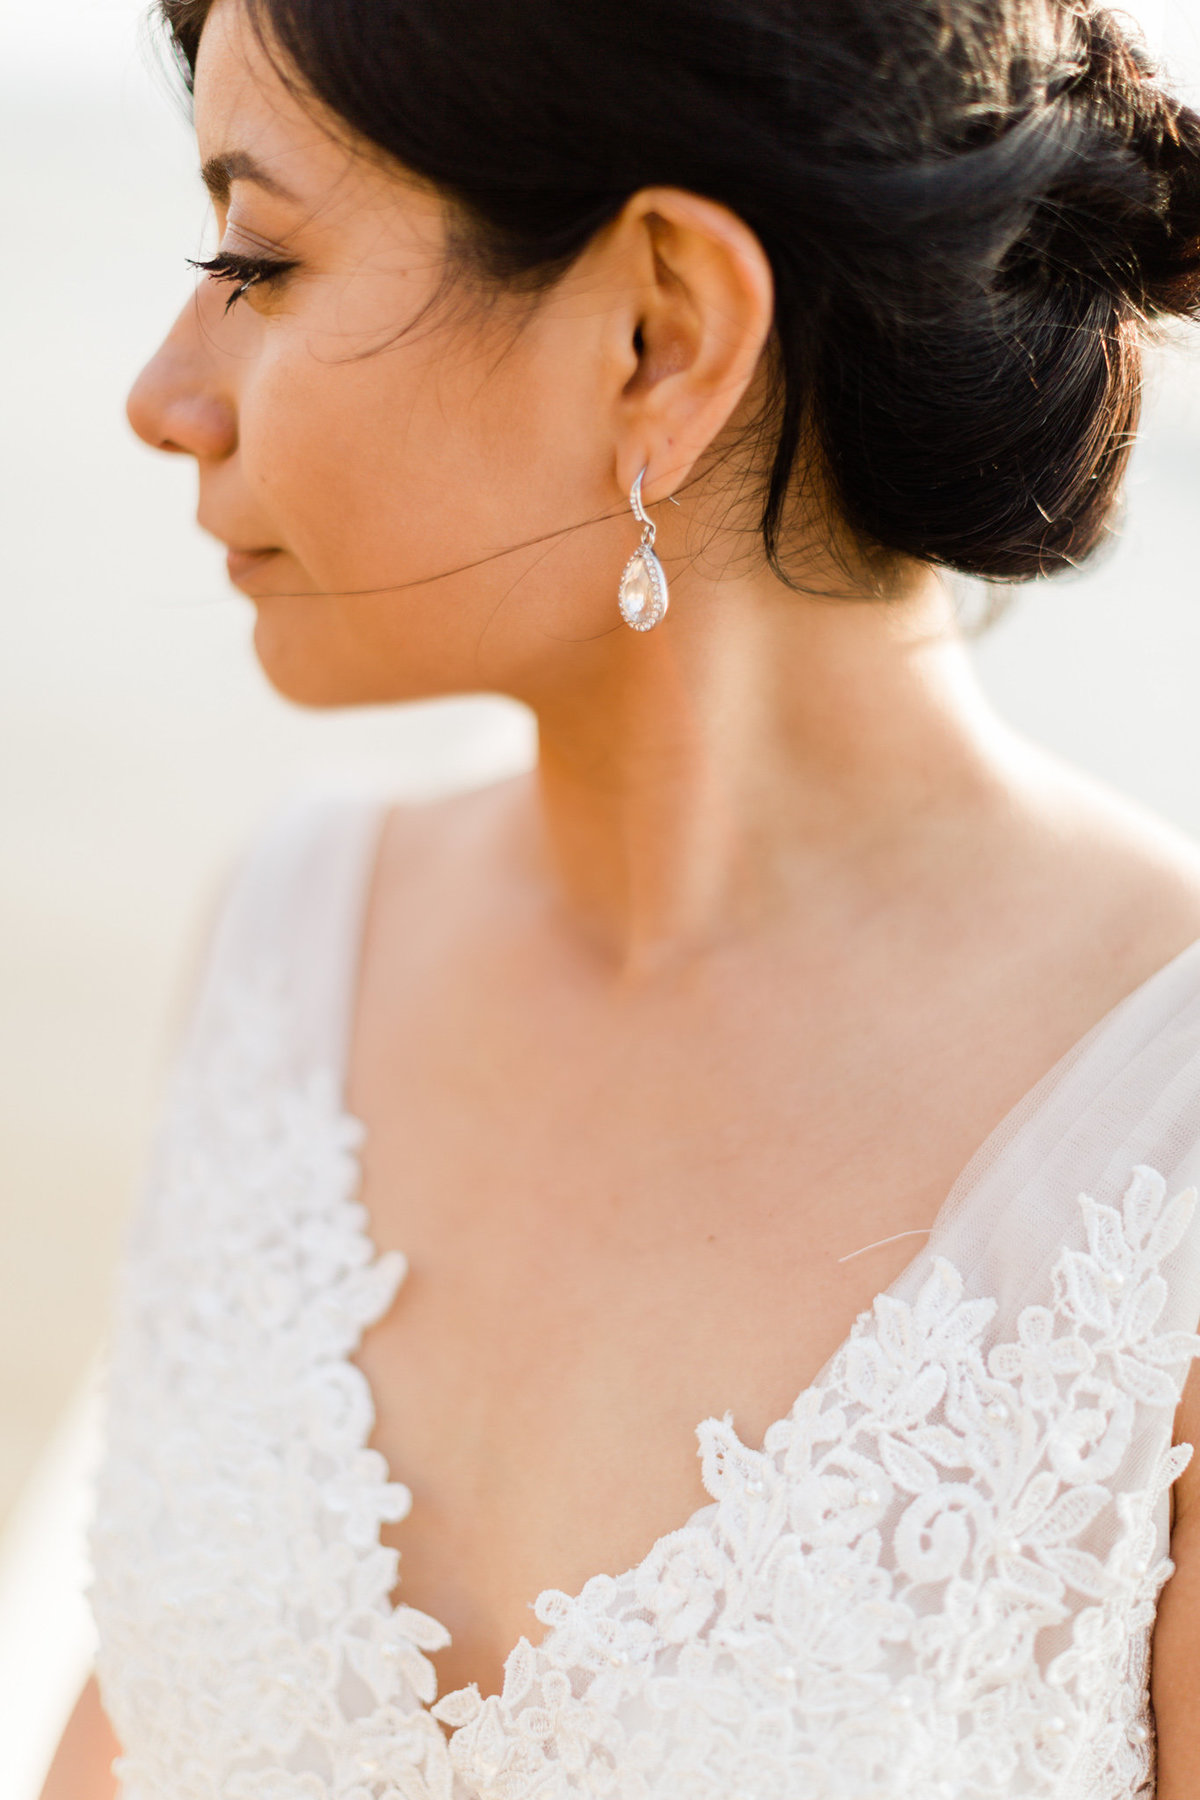 traverse-city-wedding-photographer-3